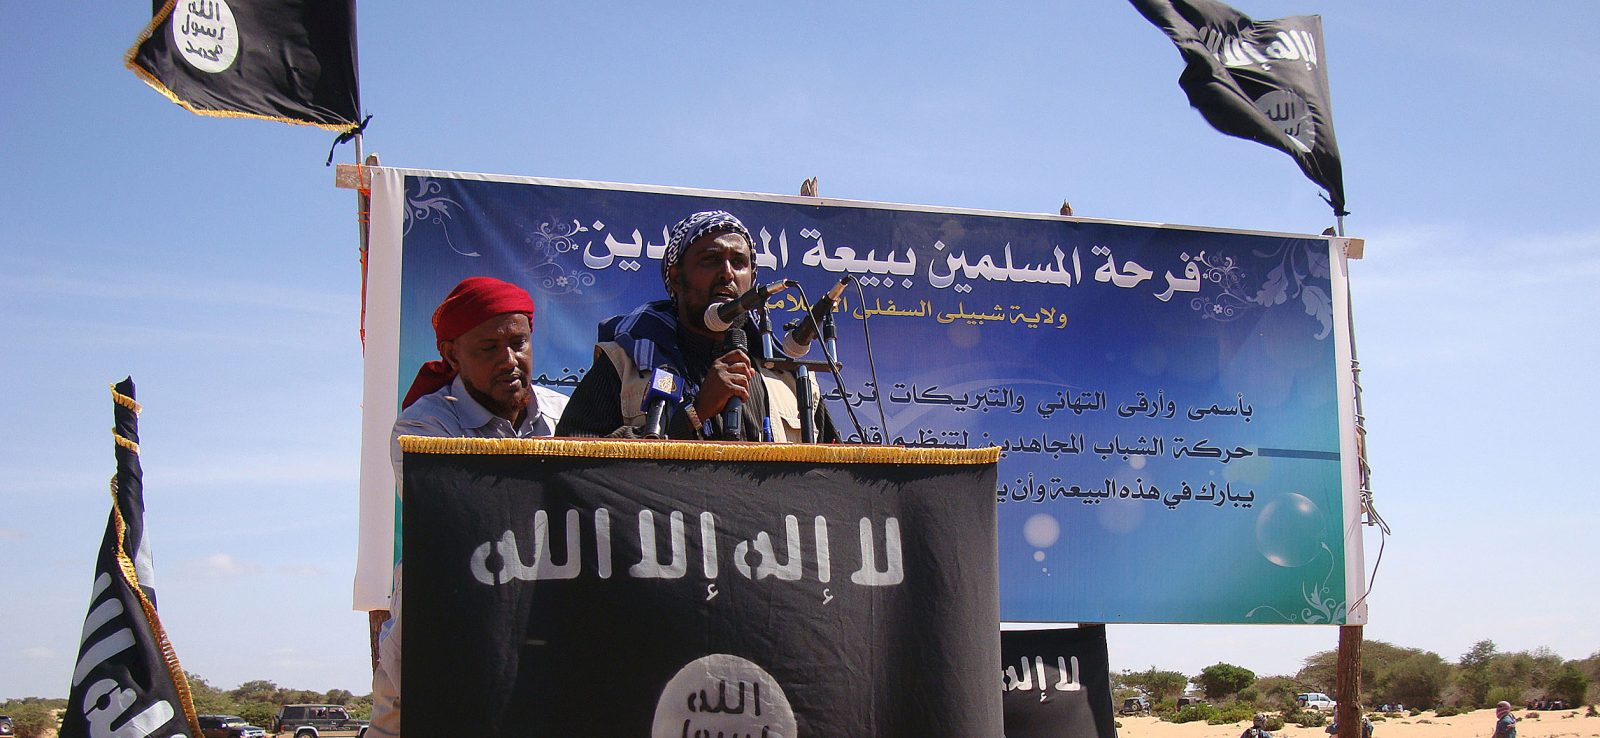 Al-Shabaab – man giving speech at podium